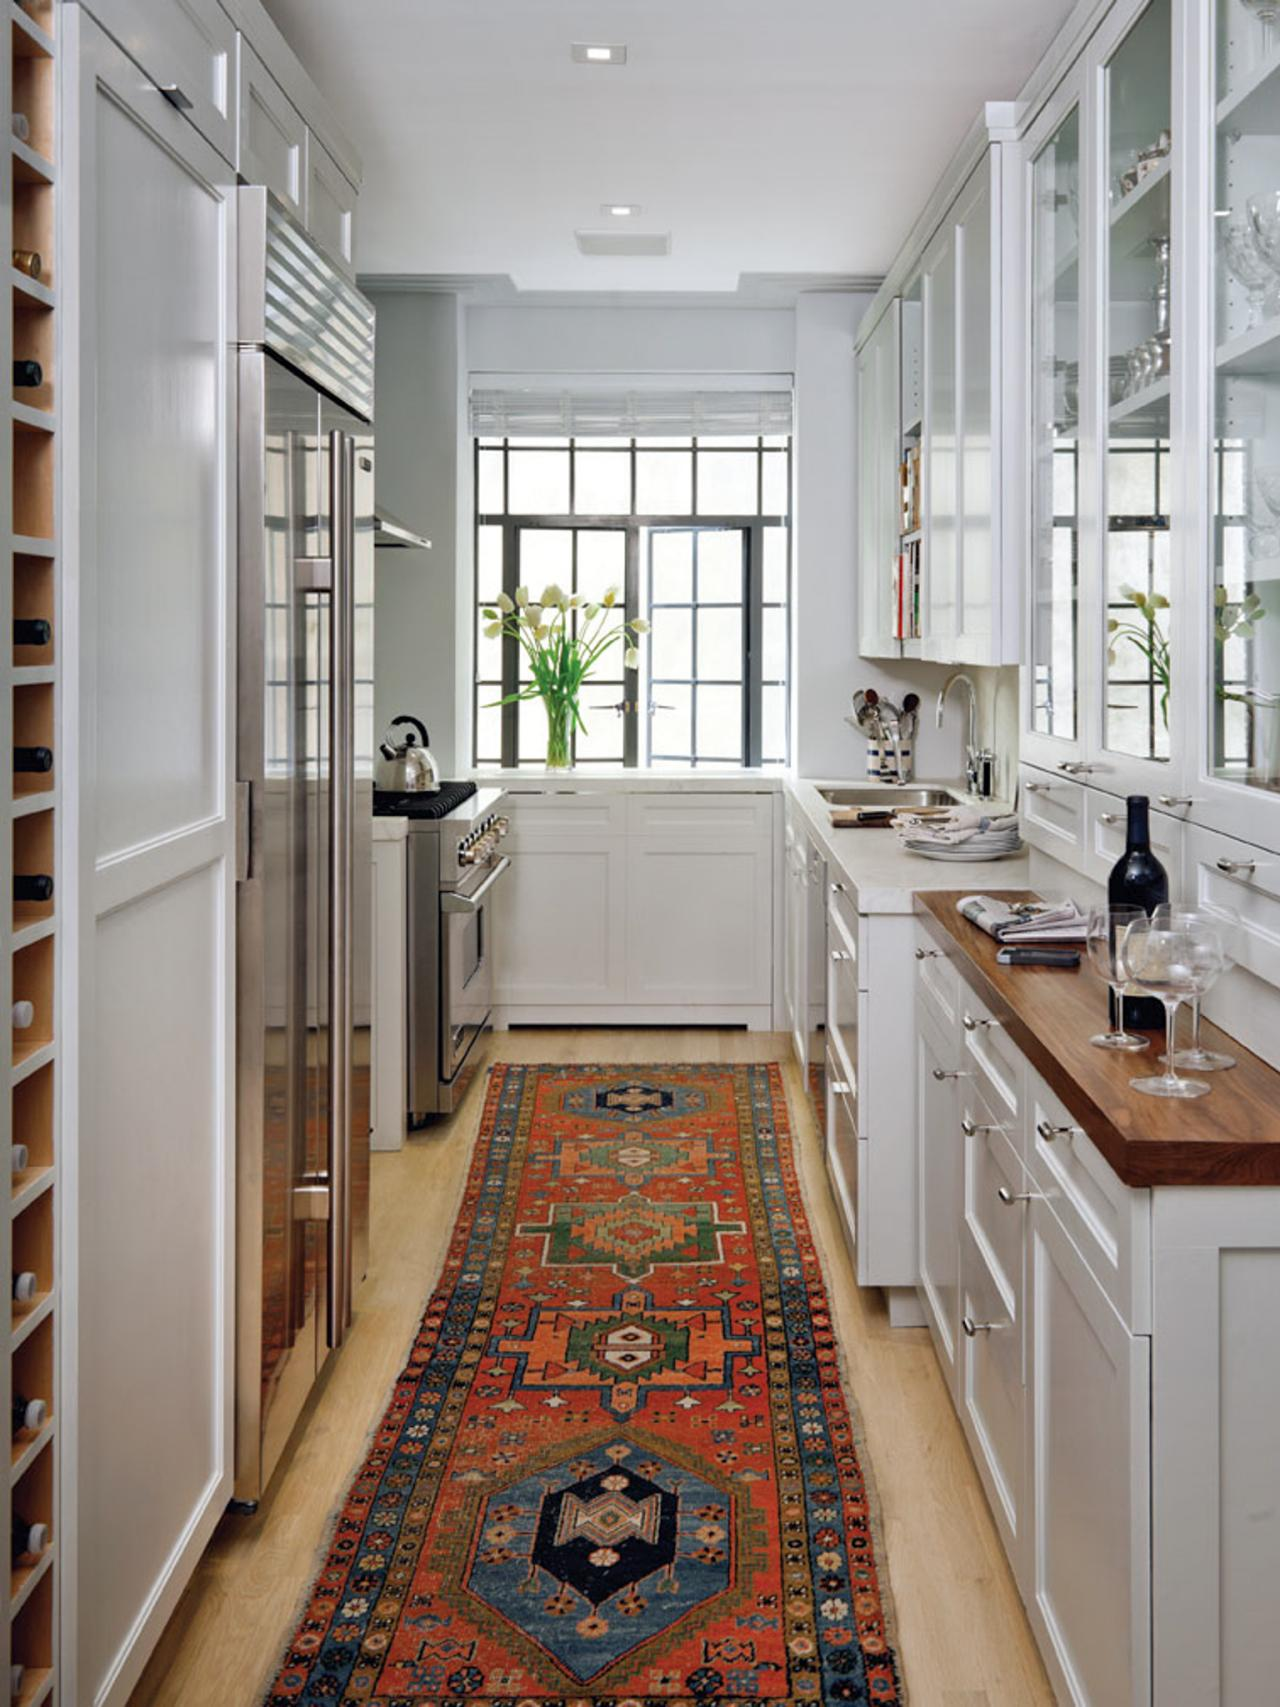 Designs For Small Galley Kitchens00 Mesmerizing Pantries For Small Kitchens Pictures Ideas & Tips From Hgtv  Hgtv Inspiration